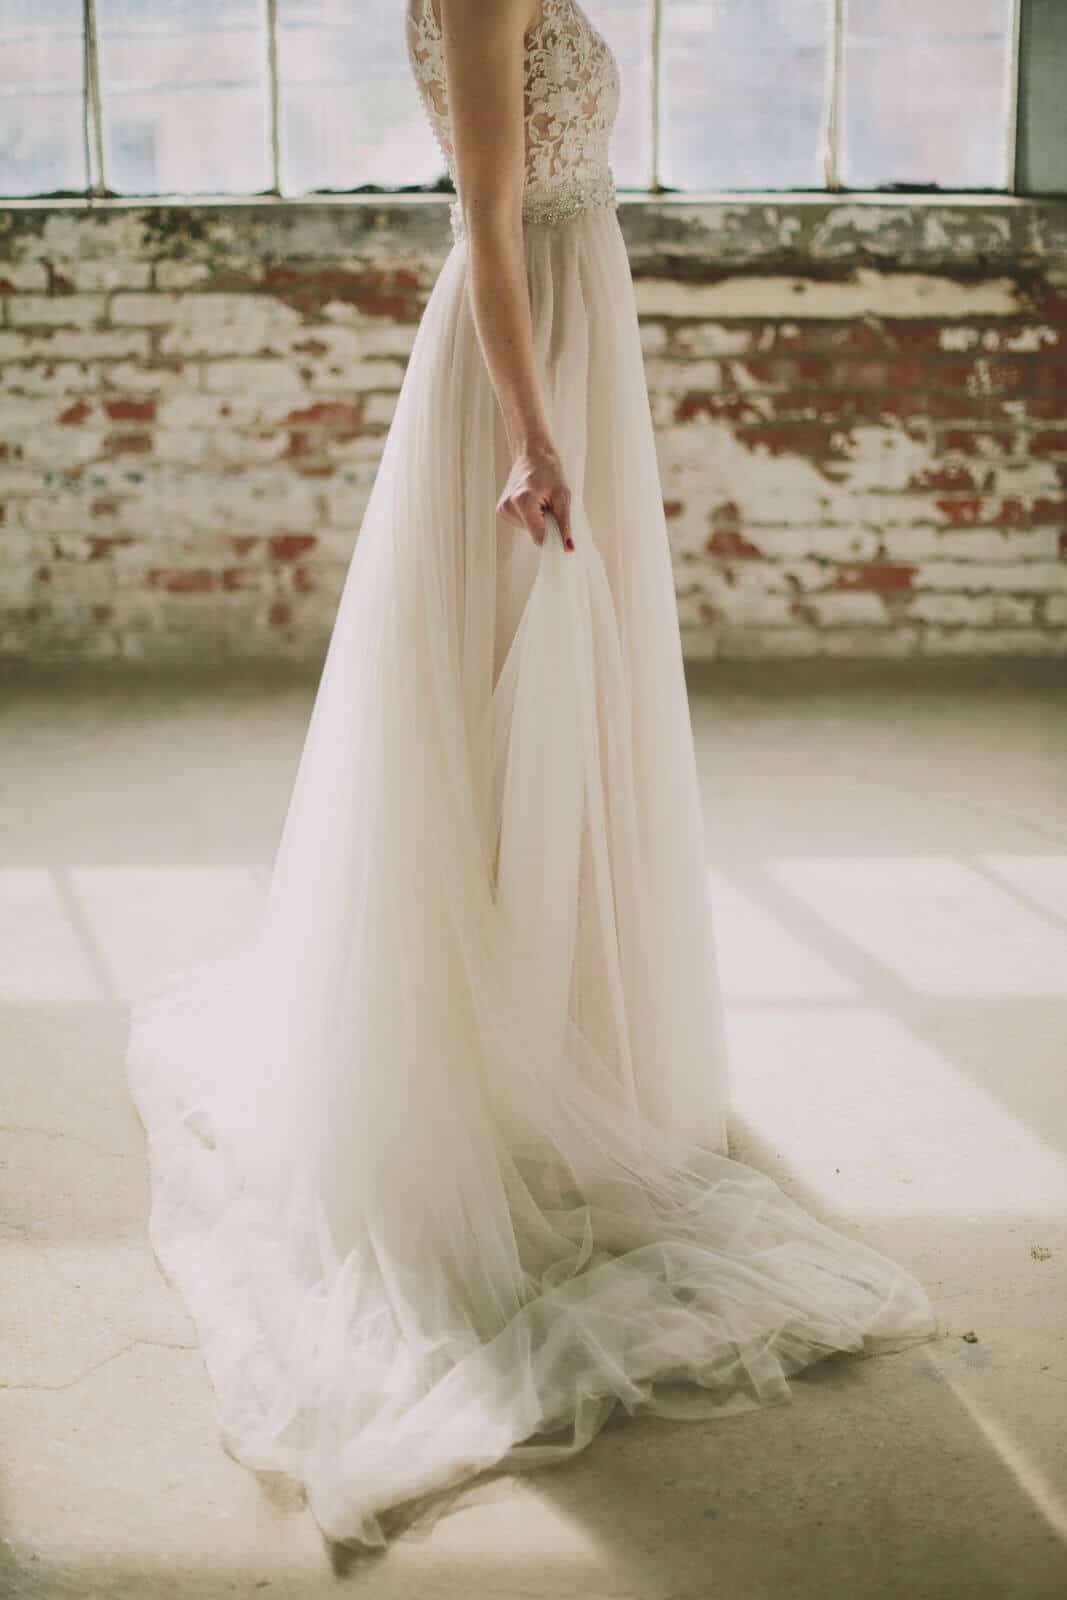 bride, bhldn, wedding dress, stylish, modern, love, adam lowe photography, strongwater, 400 rich